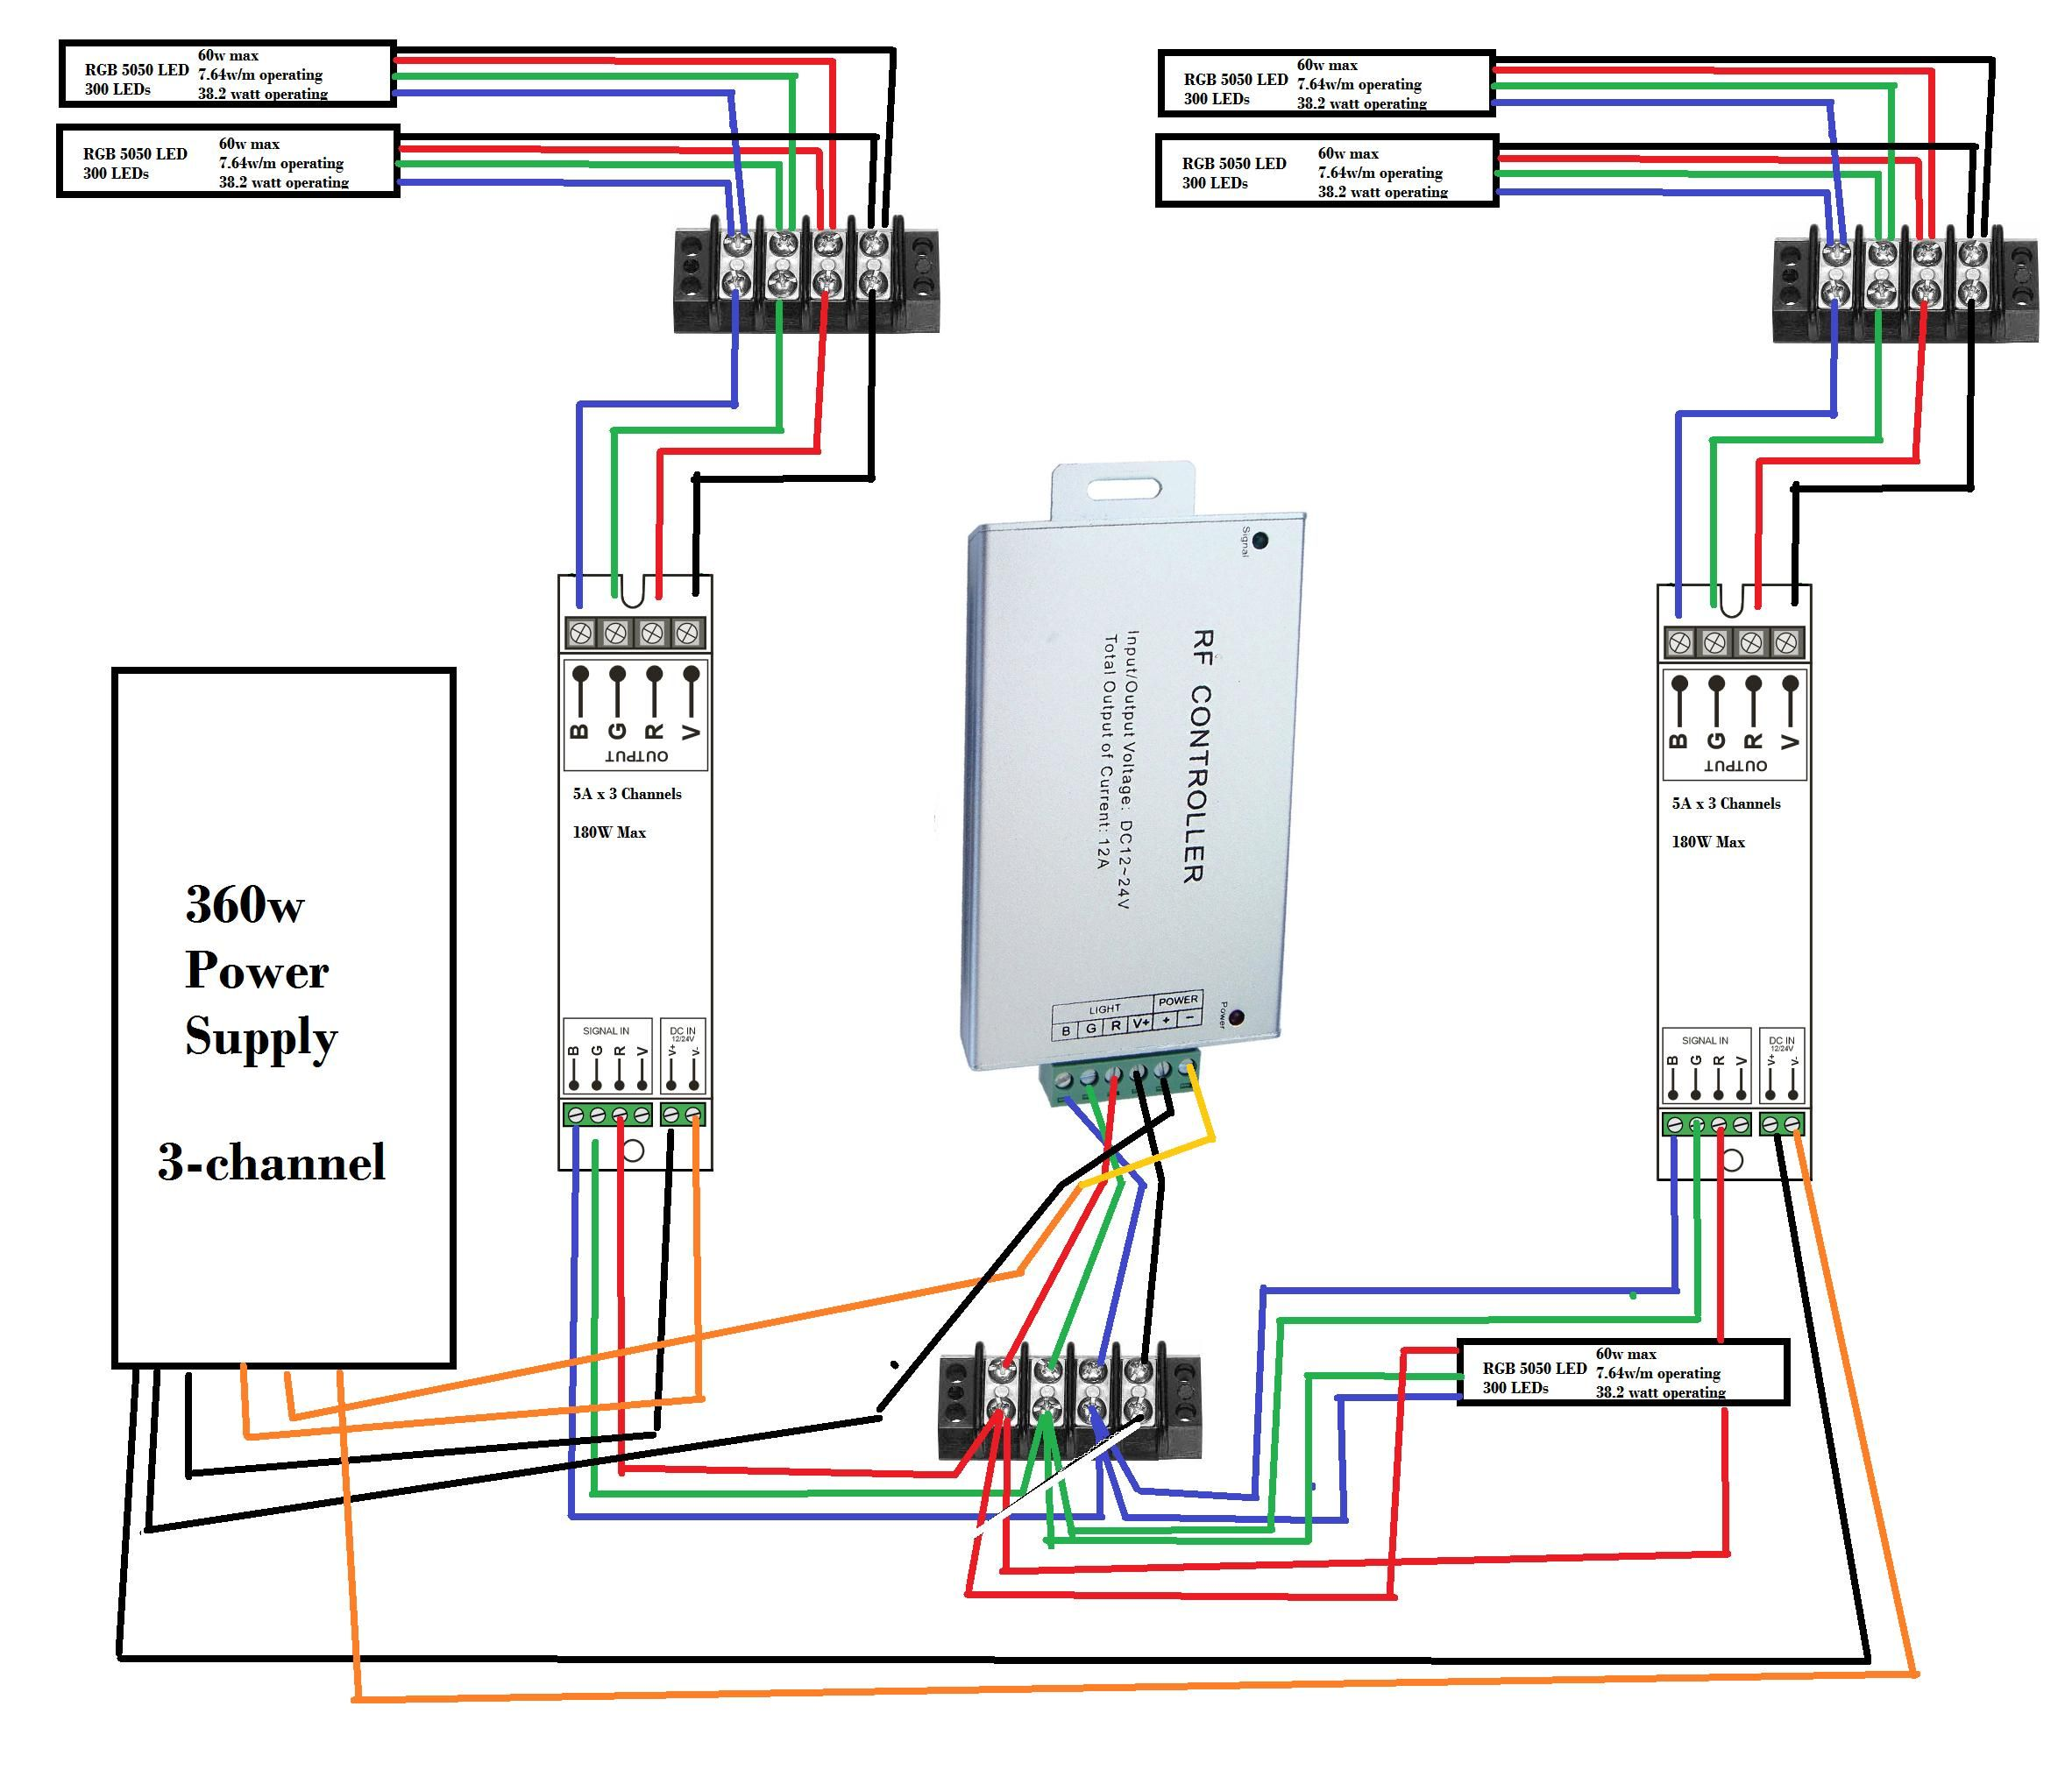 Image Result For Connecting Led Strip To 12 Volt Car Battery Power Supply Wiring Diagram Led Strip Lighting Led Strip Led